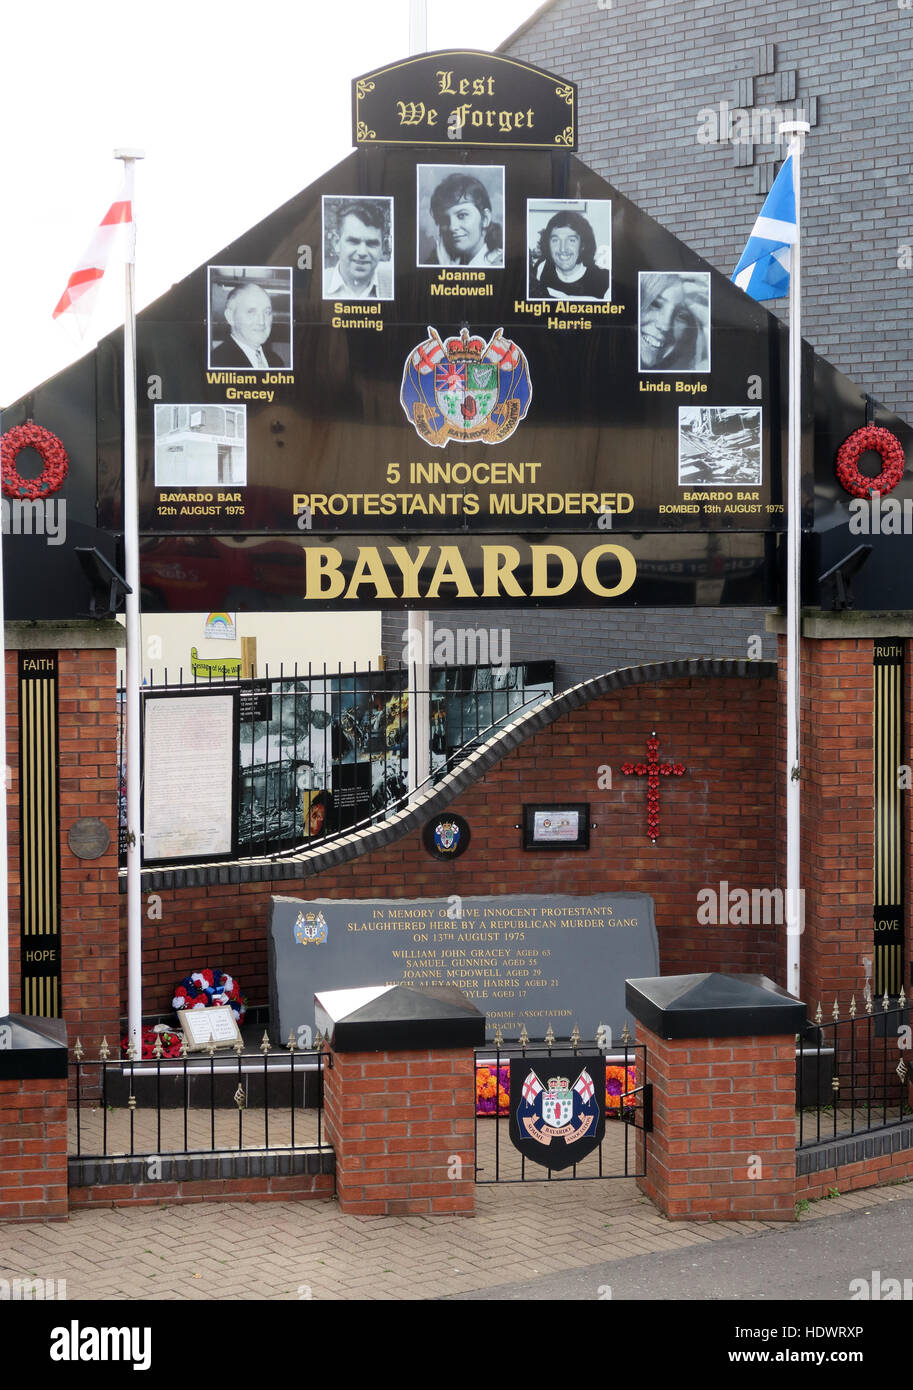 Bayardo,memorial,UFF,Unionist,mural,off,Shankill,rd,Road,West Belfast,Northern Ireland,UK,Ireland,fighter,fighting,innocents,murdered,murder,bars,pub,pubs,Lest We Forget,GoTonySmith,@HotpixUK,Tony,Smith,UK,GB,Great,Britain,United,Kingdom,Irish,British,Ireland,problem,with,problem with,issue with,NI,Northern,Northern Ireland,Belfast,City,Centre,Art,Artists,the,troubles,The Troubles,Good Friday Agreement,Peace,honour,painting,wall,walls,tribute,Unionist,unionism,Protestant,community,Fight,Justice,West,Beal,feirste,martyrs,social,tour,tourism,tourists,urban,six,counties,6,backdrop,county,Antrim,UVF,DUP,British,GB,Empire,Buy Pictures of,Buy Images Of,Images of,Stock Images,Tony Smith,United Kingdom,Great Britain,British Isles,Belfast protestant community,Peoples army